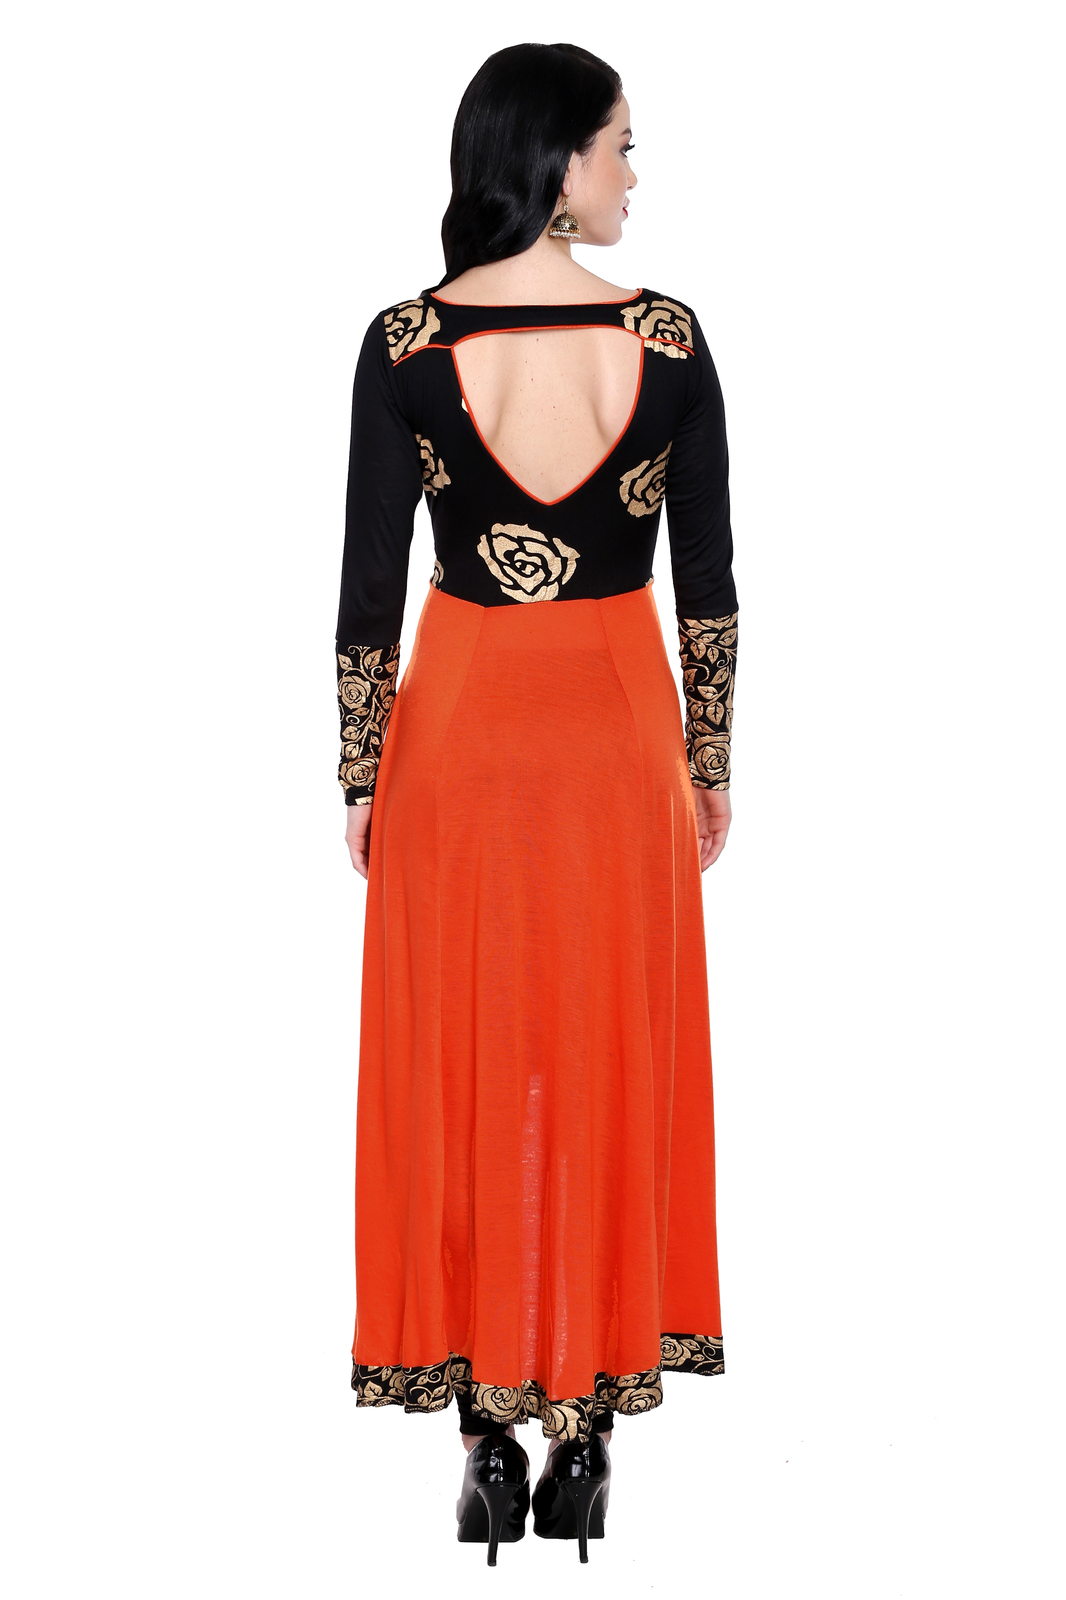 Ira Soleil kintted viscose orange high low kurti with gold flower print on black